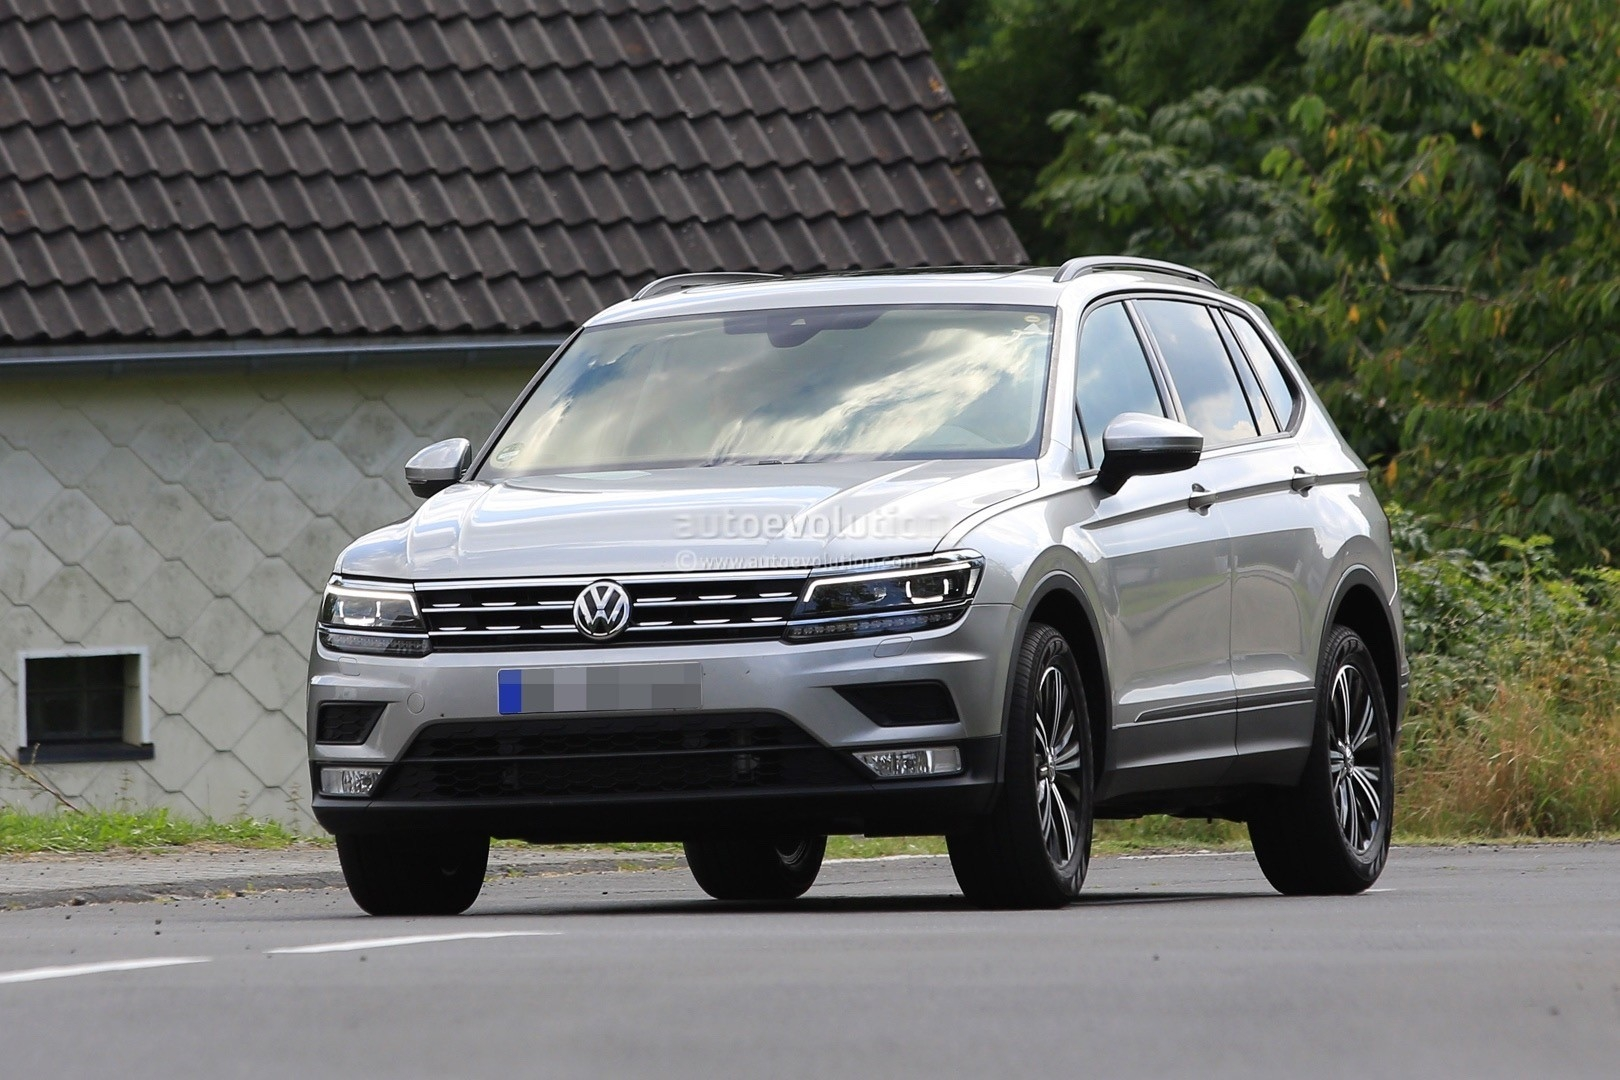 surprise le suv sept places volkswagen tiguan xl ne se cache plus. Black Bedroom Furniture Sets. Home Design Ideas